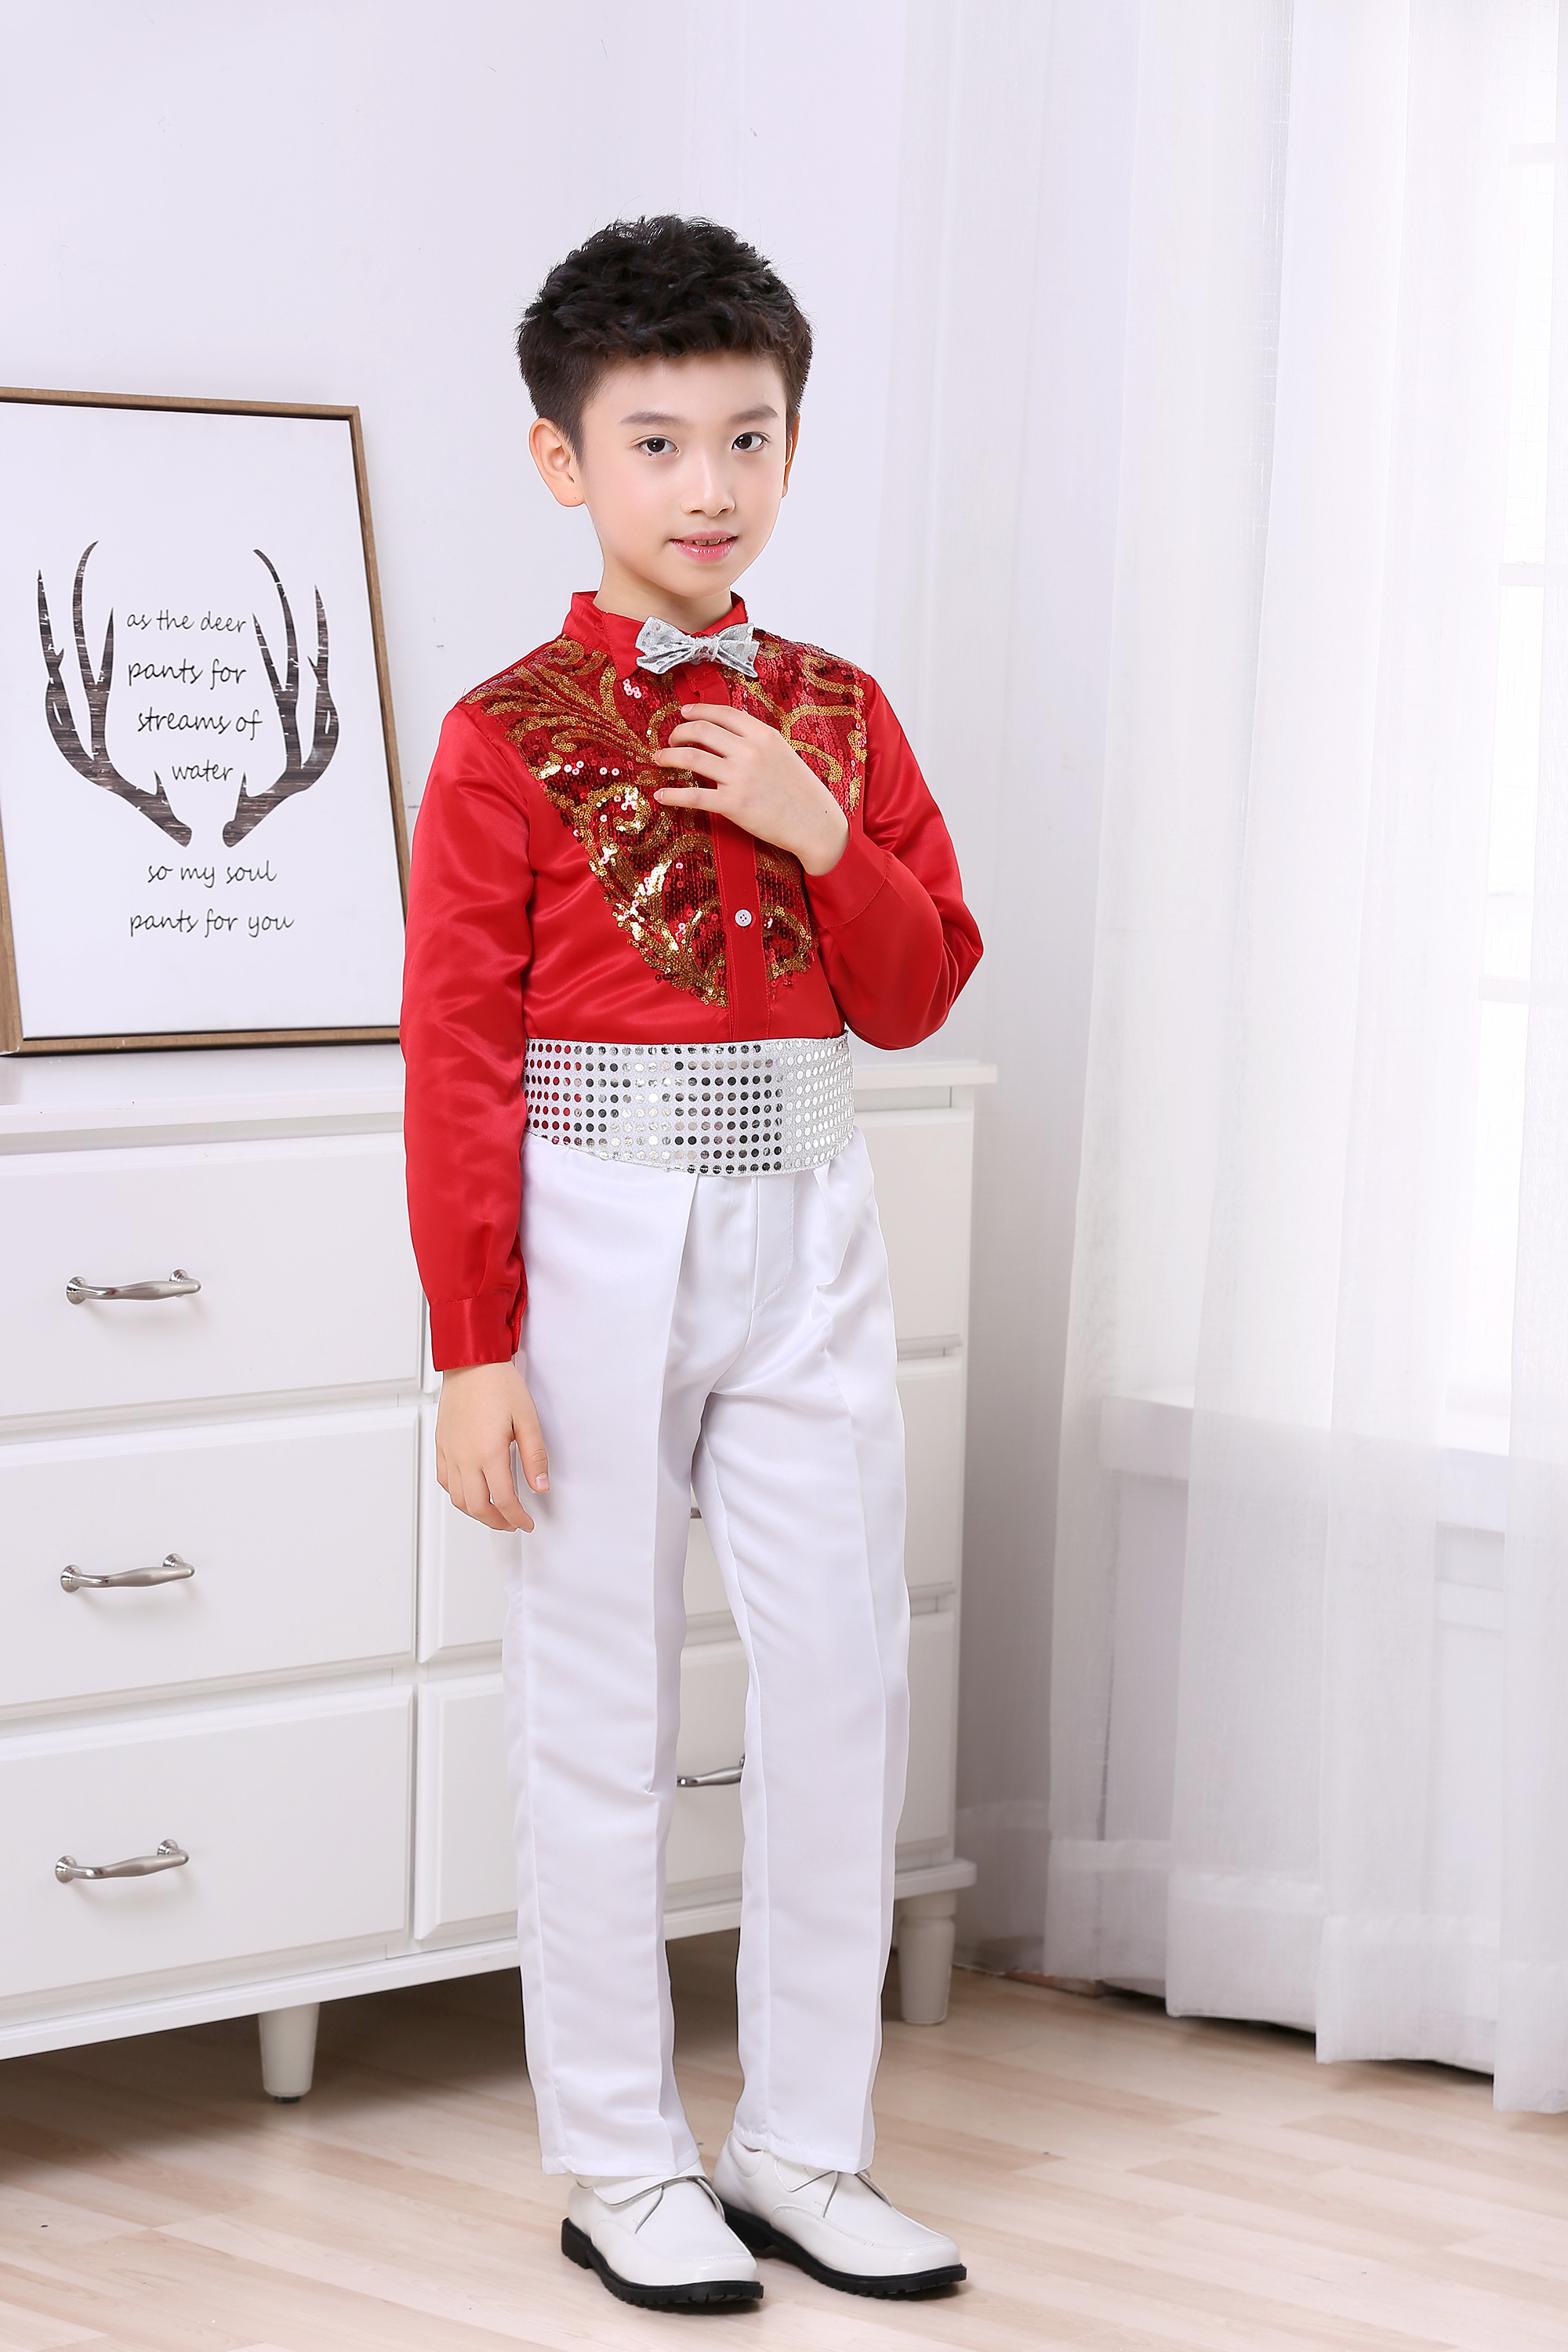 Children's Chorus Primary And Secondary School Students' Sequin Performance Boy Host Long Sleeve Suit Performance Clothing